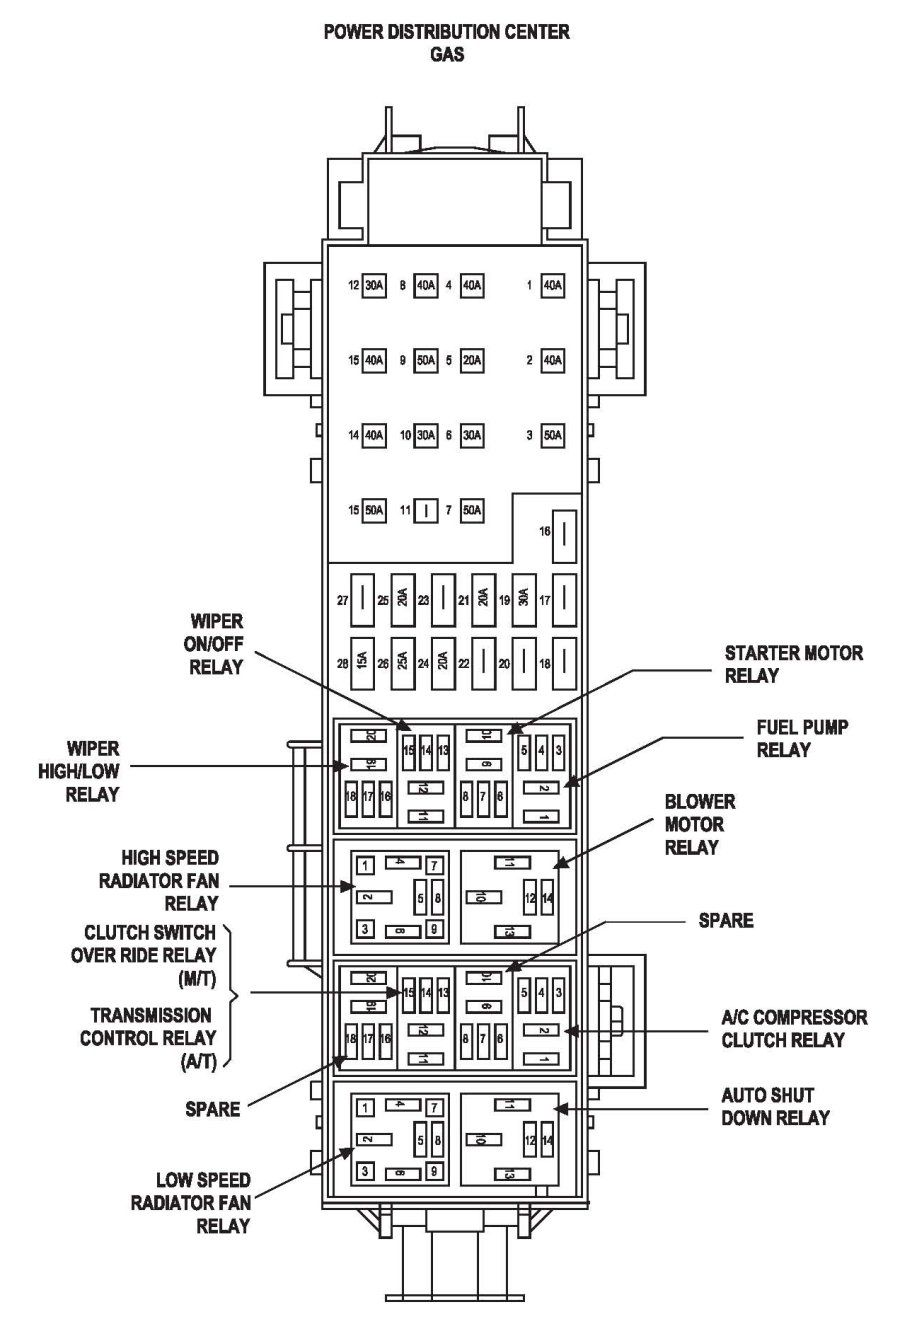 Jeep Liberty Fuse Box Diagram - image details | Jeep Liberty | Jeep on 02 wrangler 4x4, 02 wrangler relay diagram, 02 wrangler cigarette lighter, 02 wrangler wiring diagram,